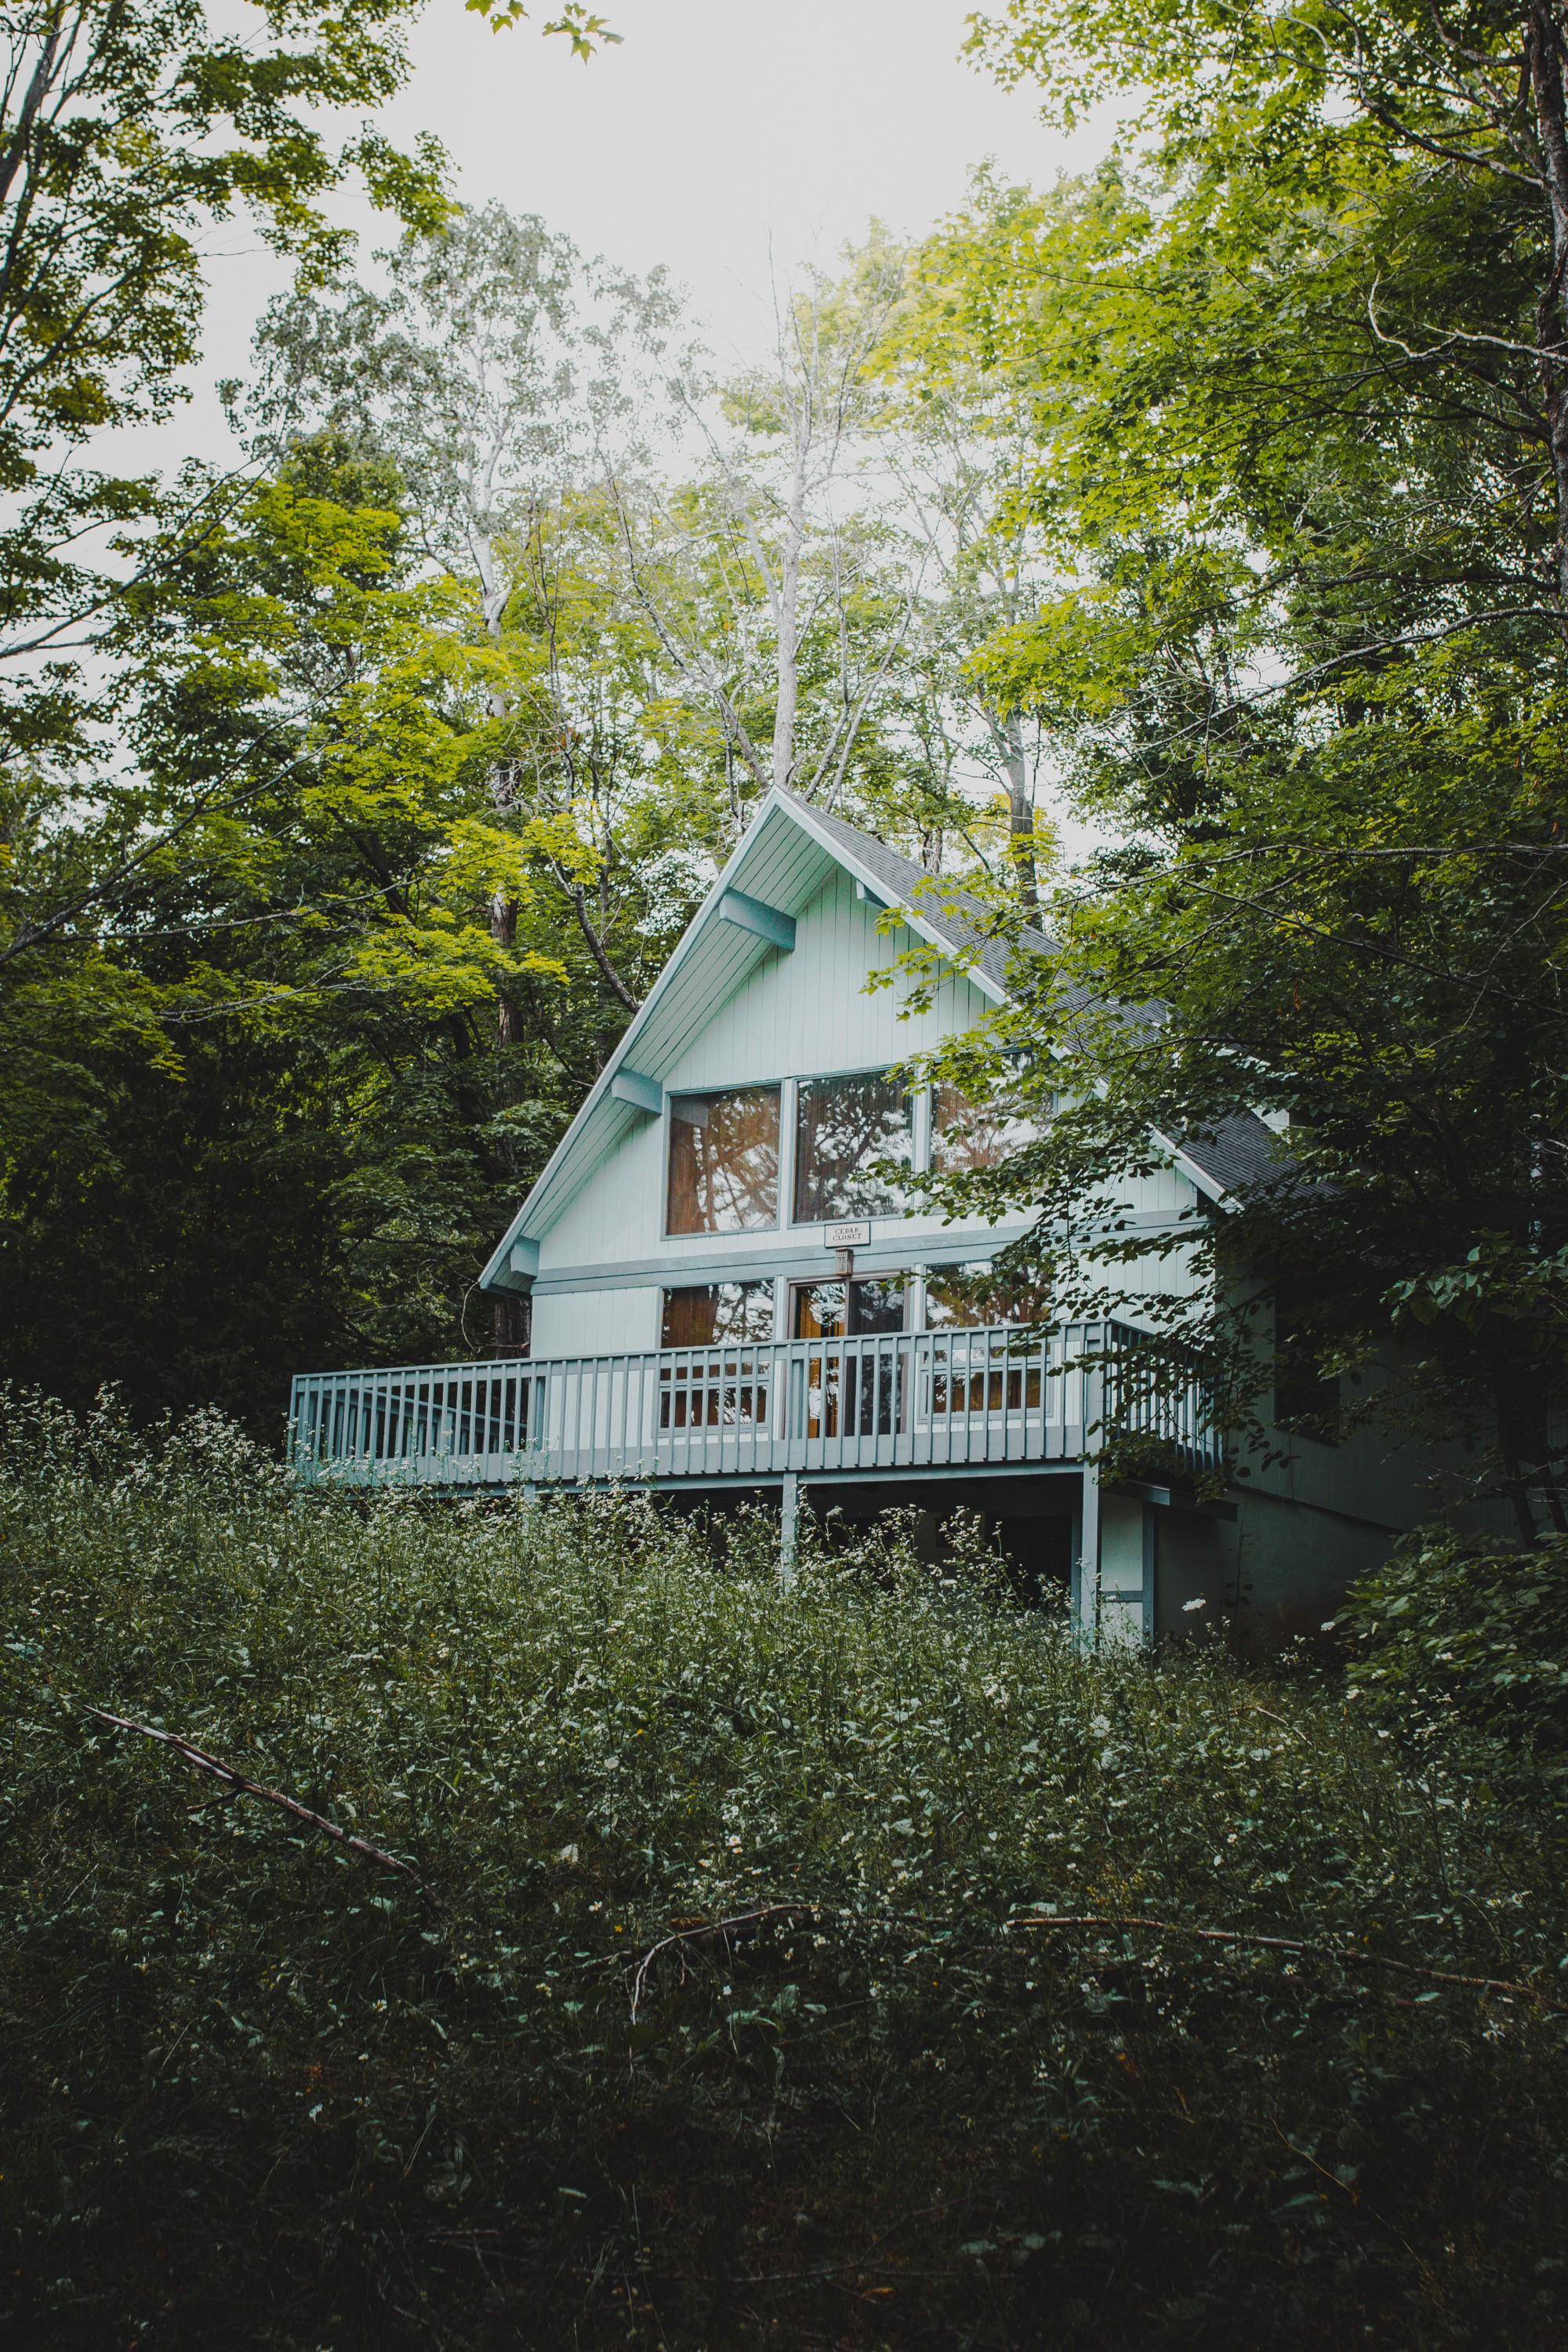 House partially hidden by trees